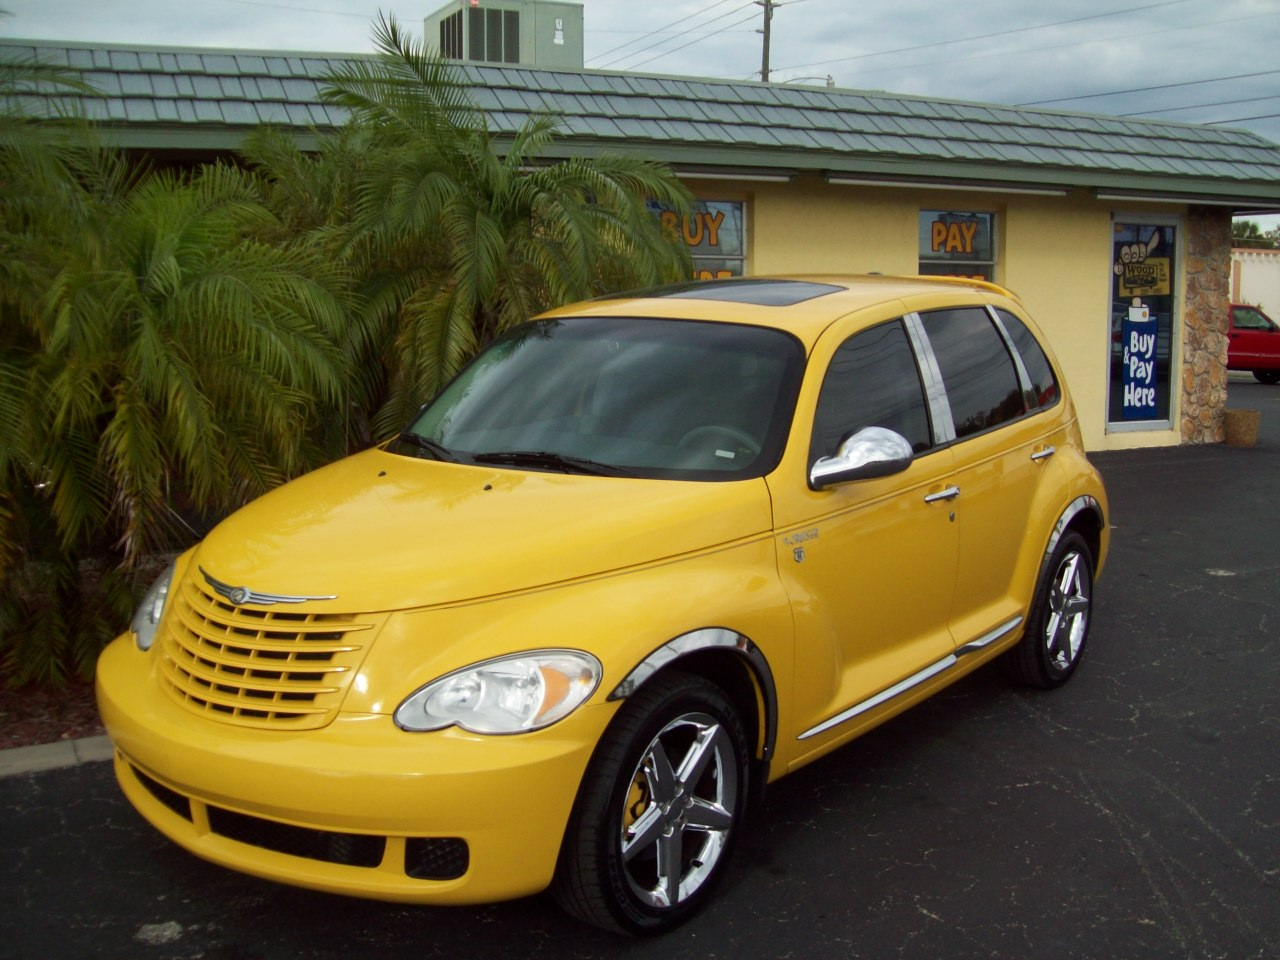 chrysler pt cruiser route 66 technical details history. Black Bedroom Furniture Sets. Home Design Ideas